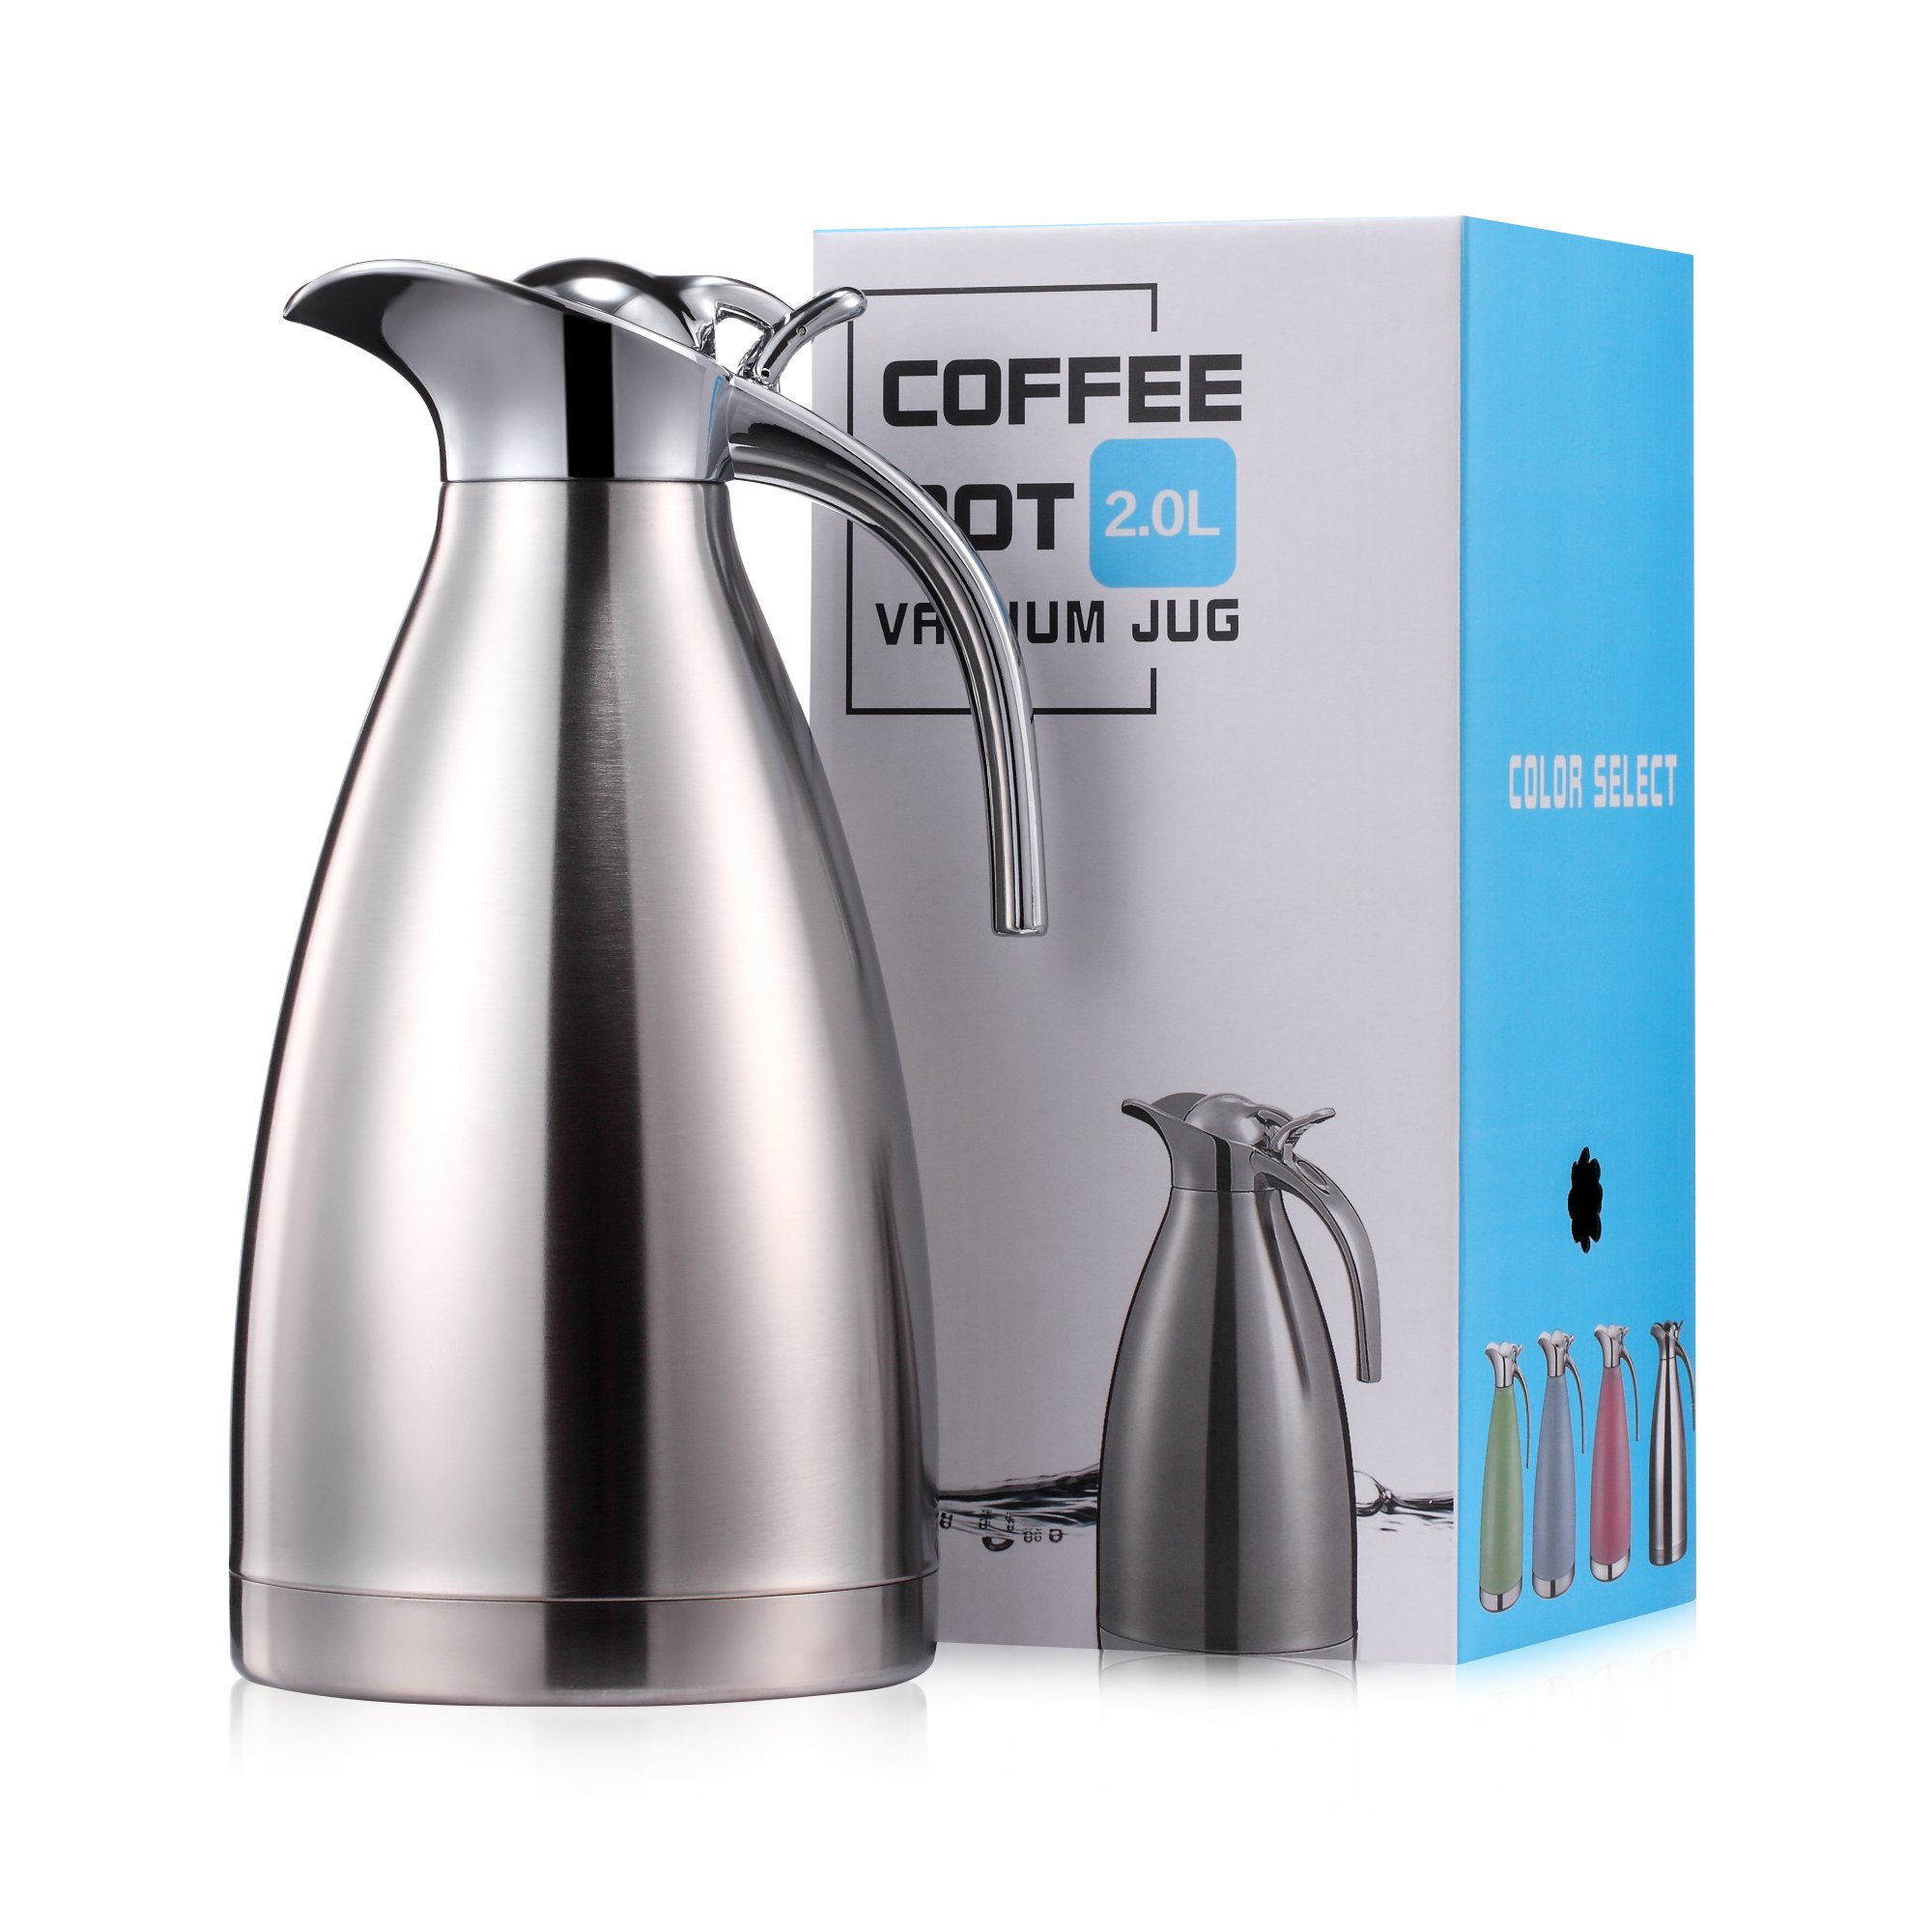 Eglaf 68 Oz Stainless Steel Thermal Carafe - Quality Thermal Pitcher - Vacuum Insulated Double Walled Coffee/Tea Carafe - Beverage Dispenser- hot/cold- 2L (stainless steel)